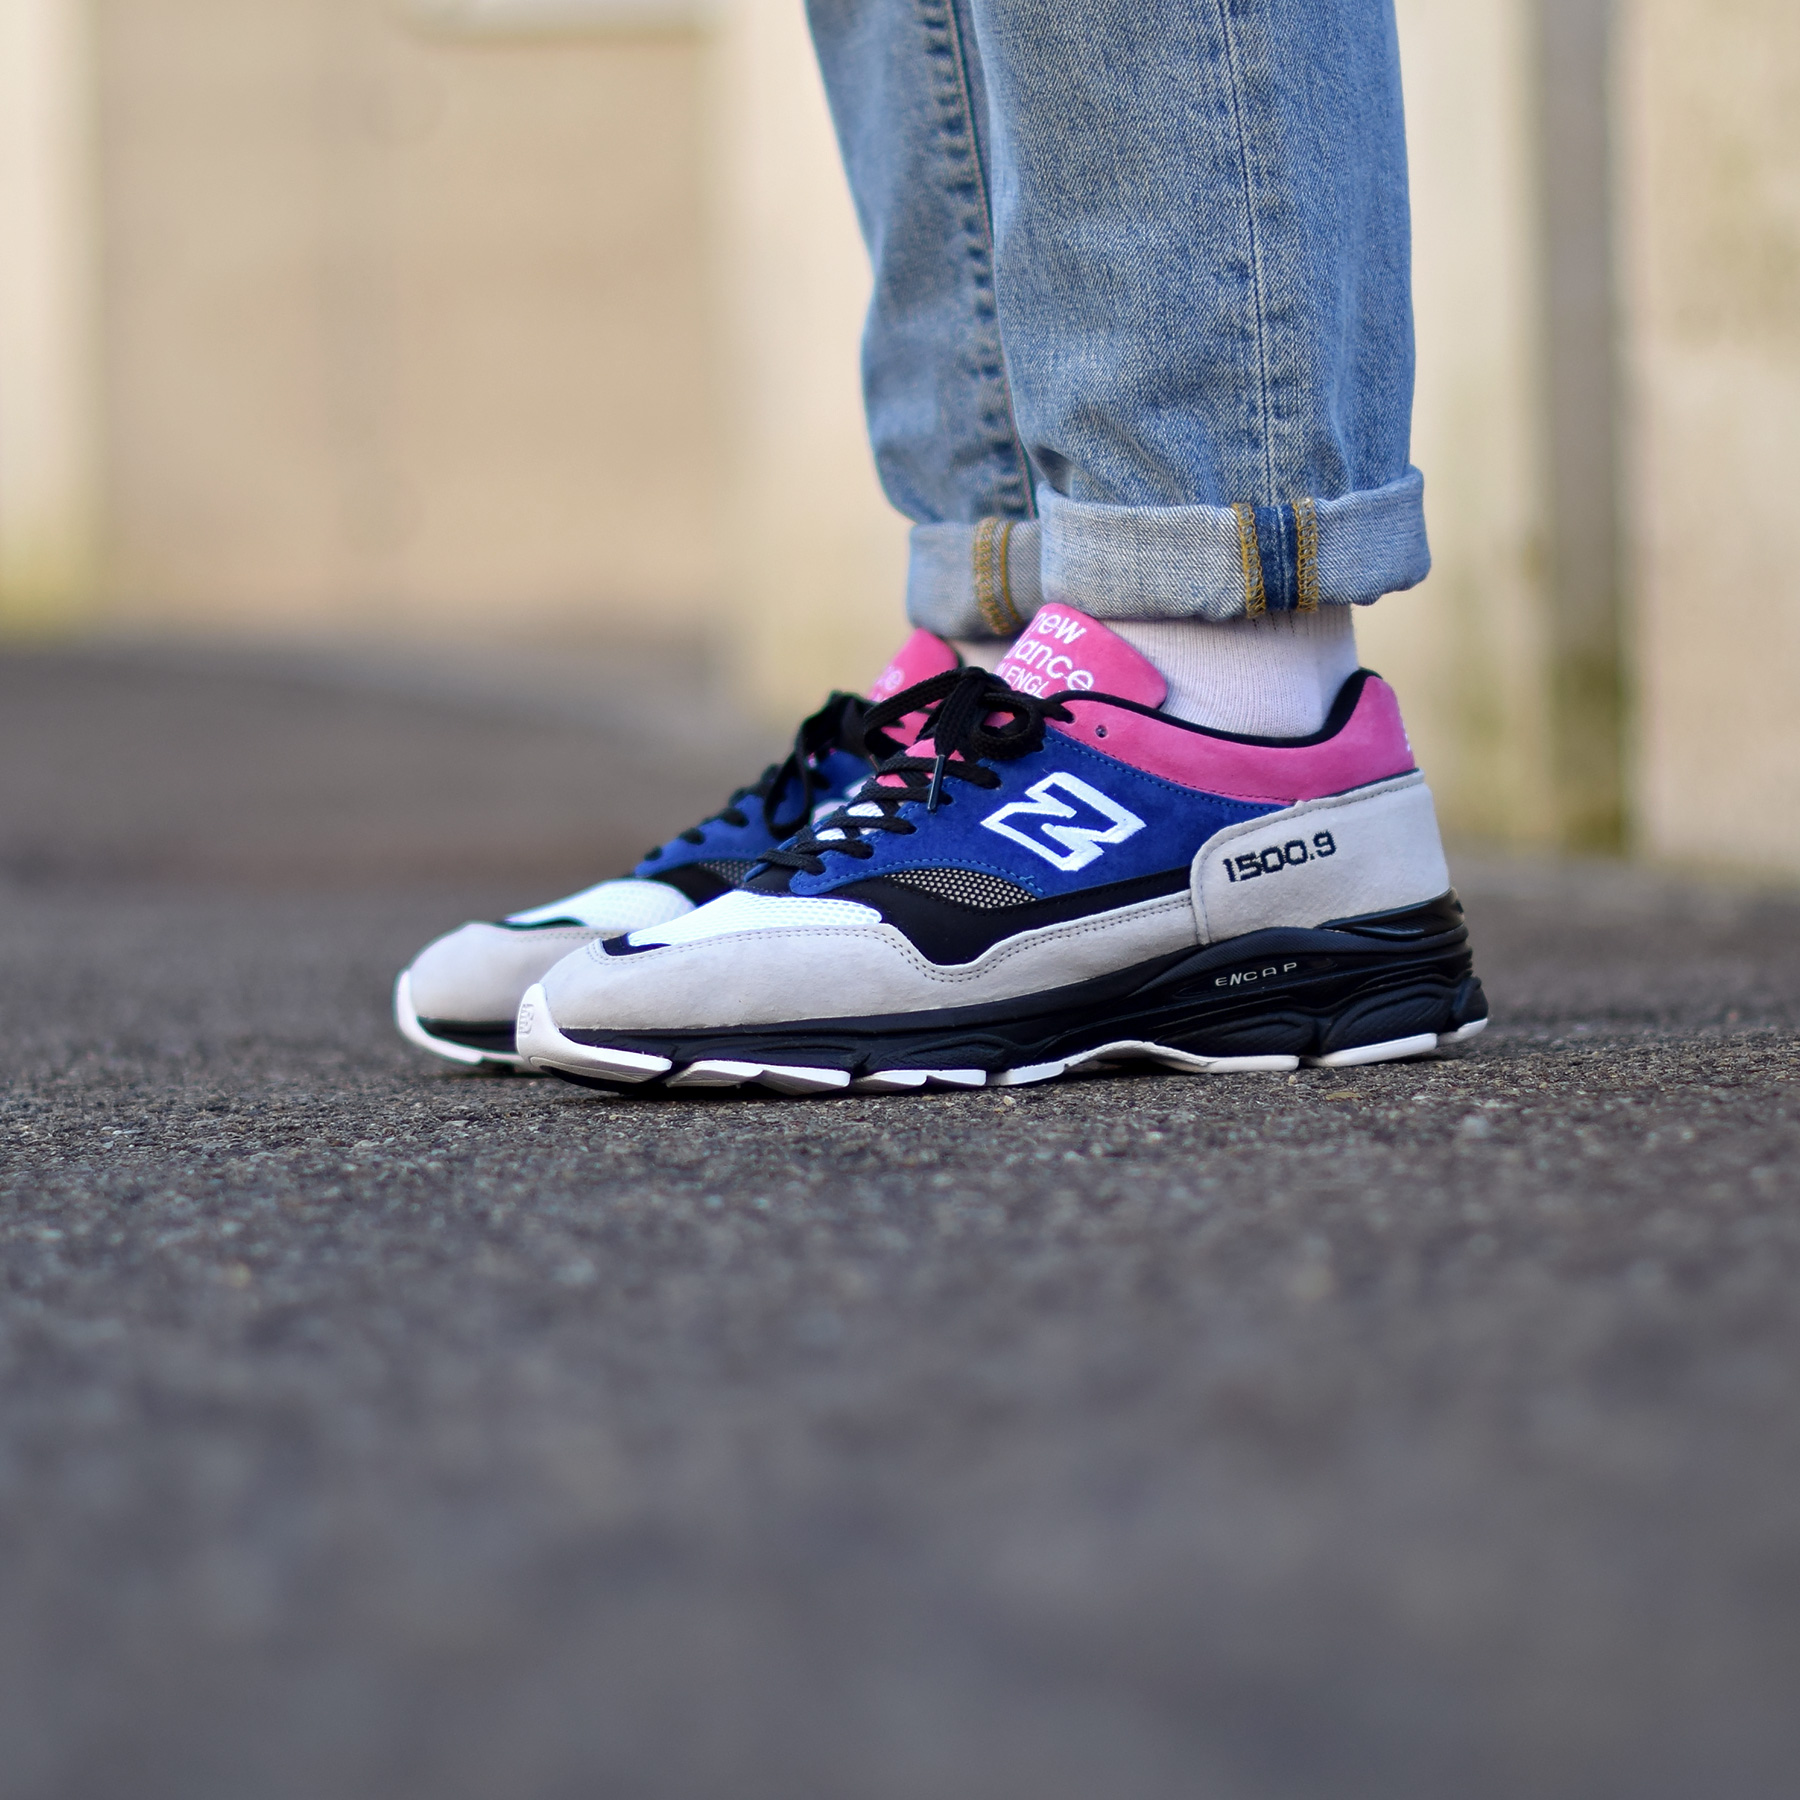 newest 6ac57 39583 New Balance M1500.9 SC Blue Pink - Sneakers.fr